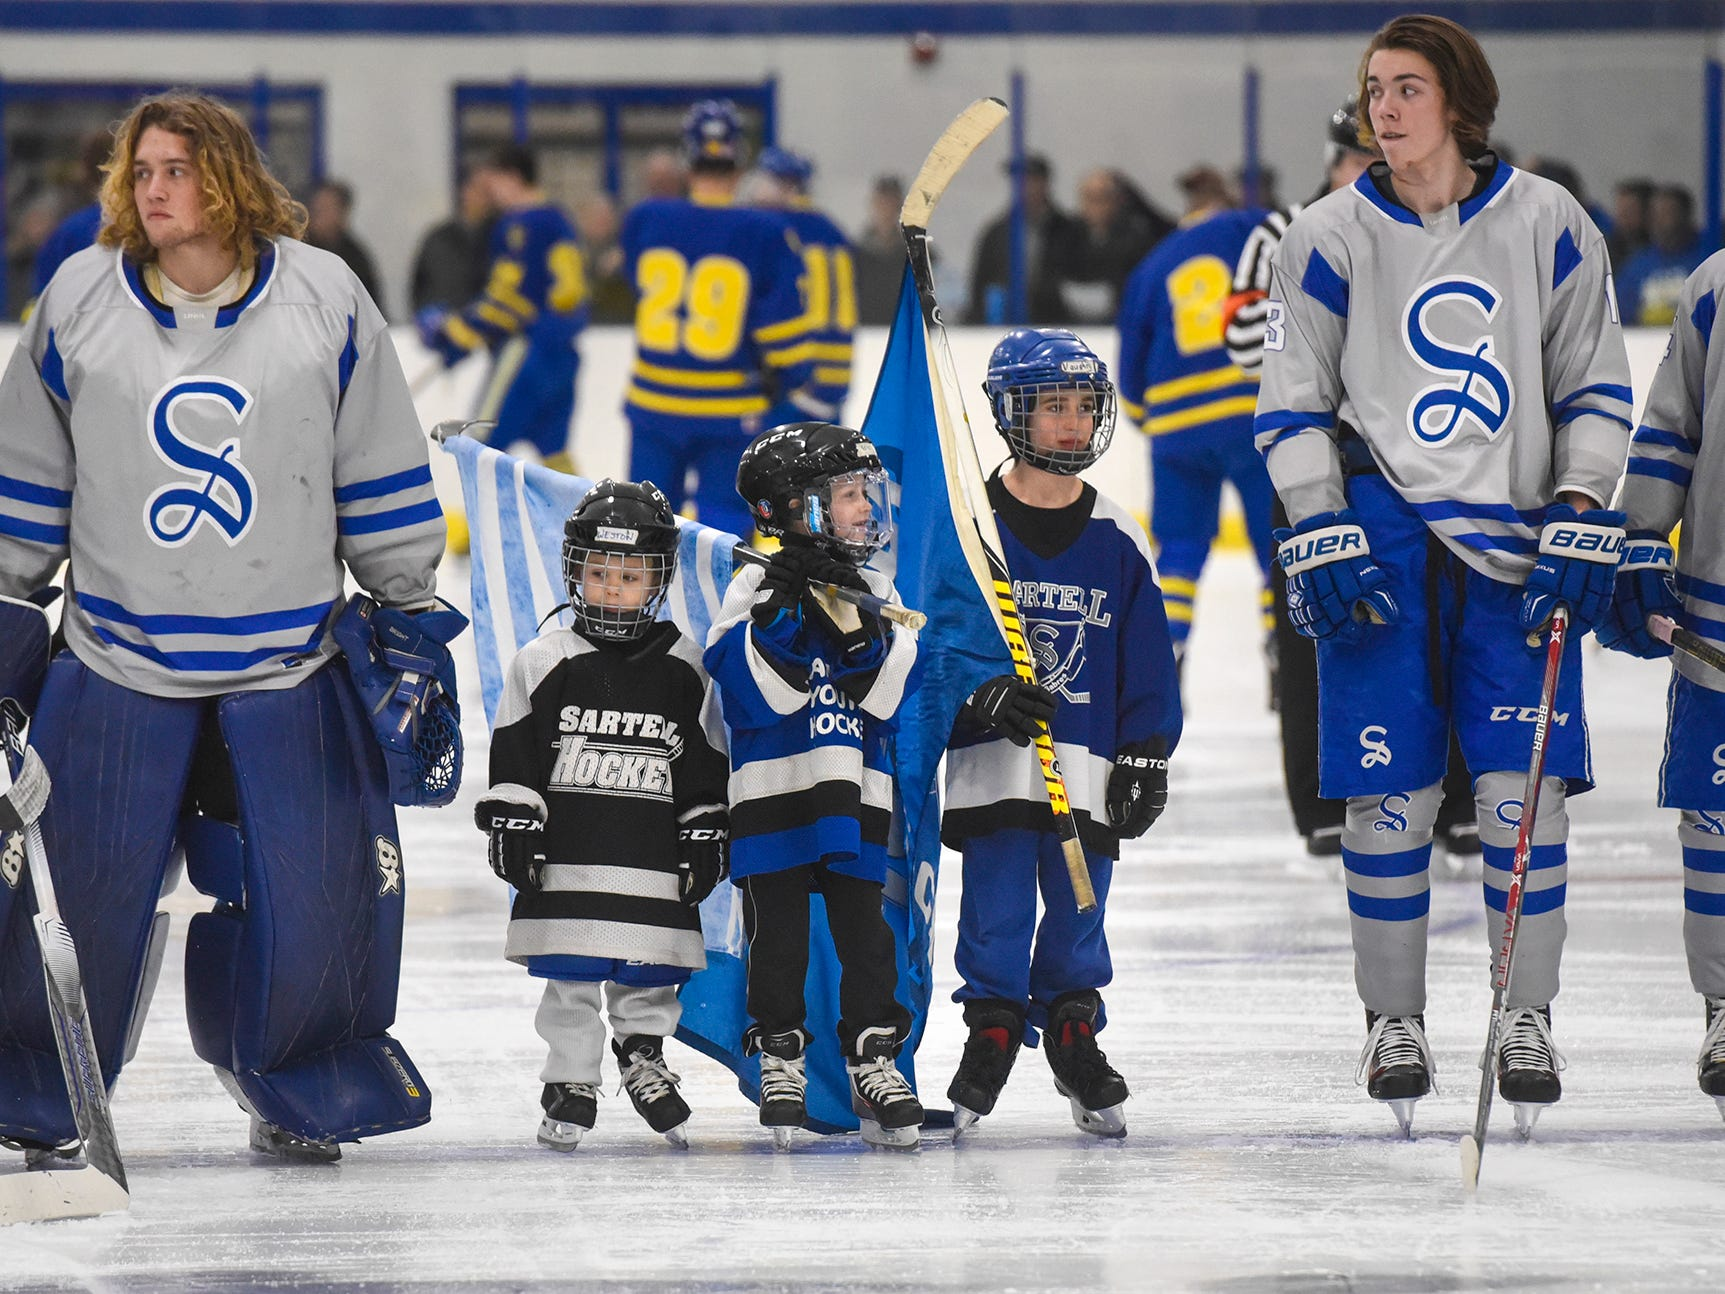 Youth hockey players line up with the Sartell varsity team before the start of the Thursday, Jan. 10, game at Bernicks Arena in Sartell.